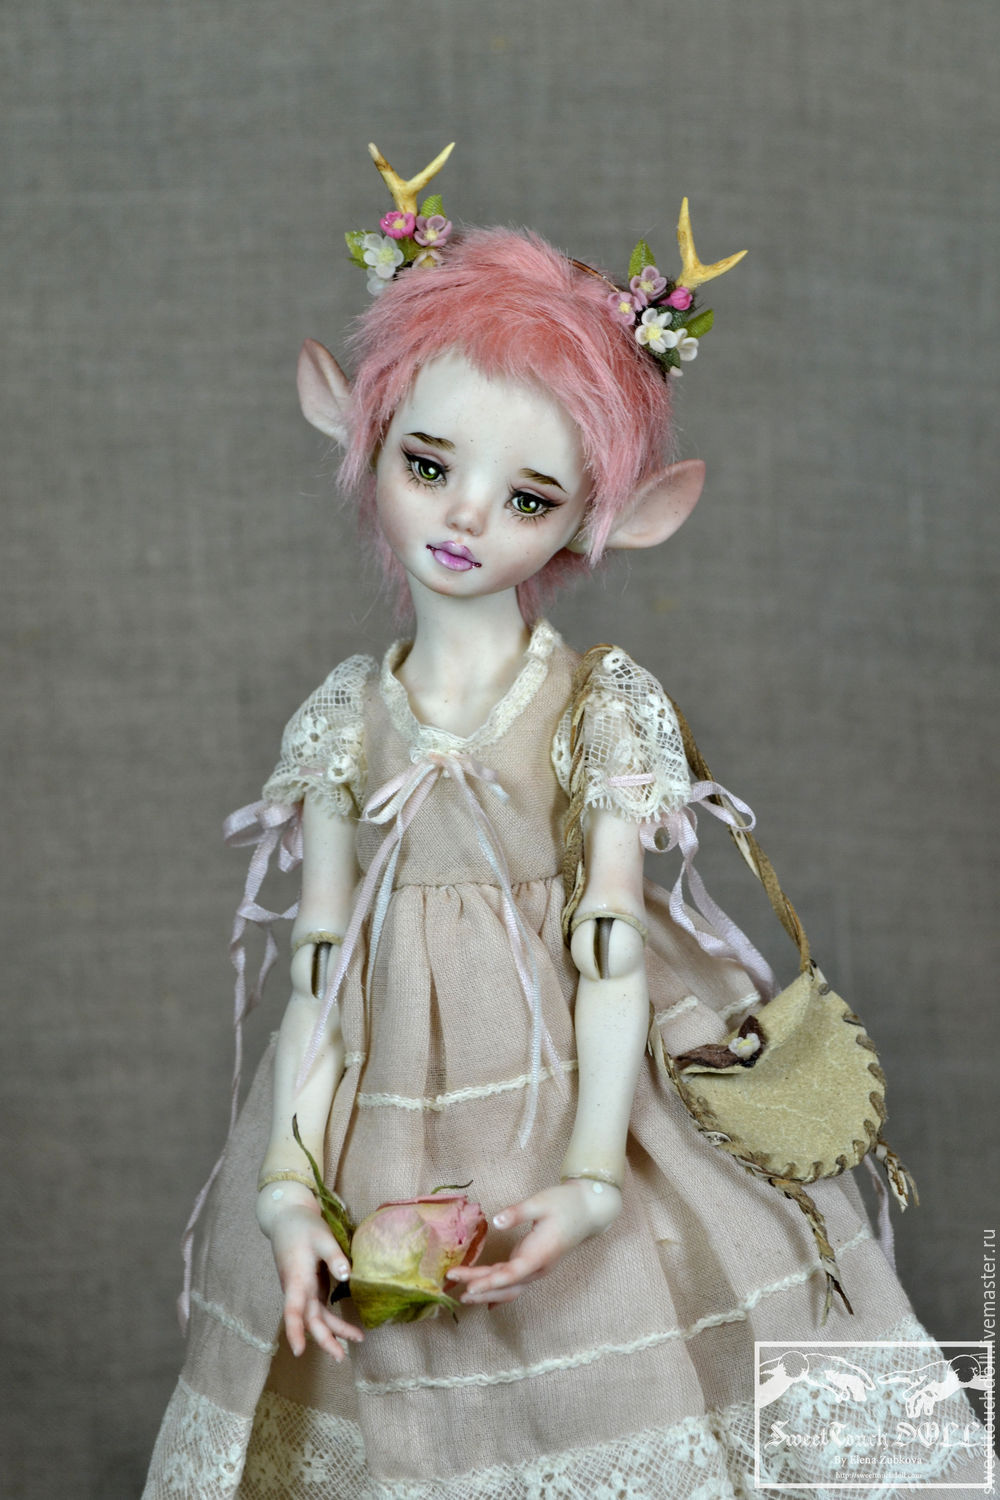 BJD… I Must be CRAZY | Polymer clay dolls, Clay dolls ... |How To Make A Ball Jointed Doll